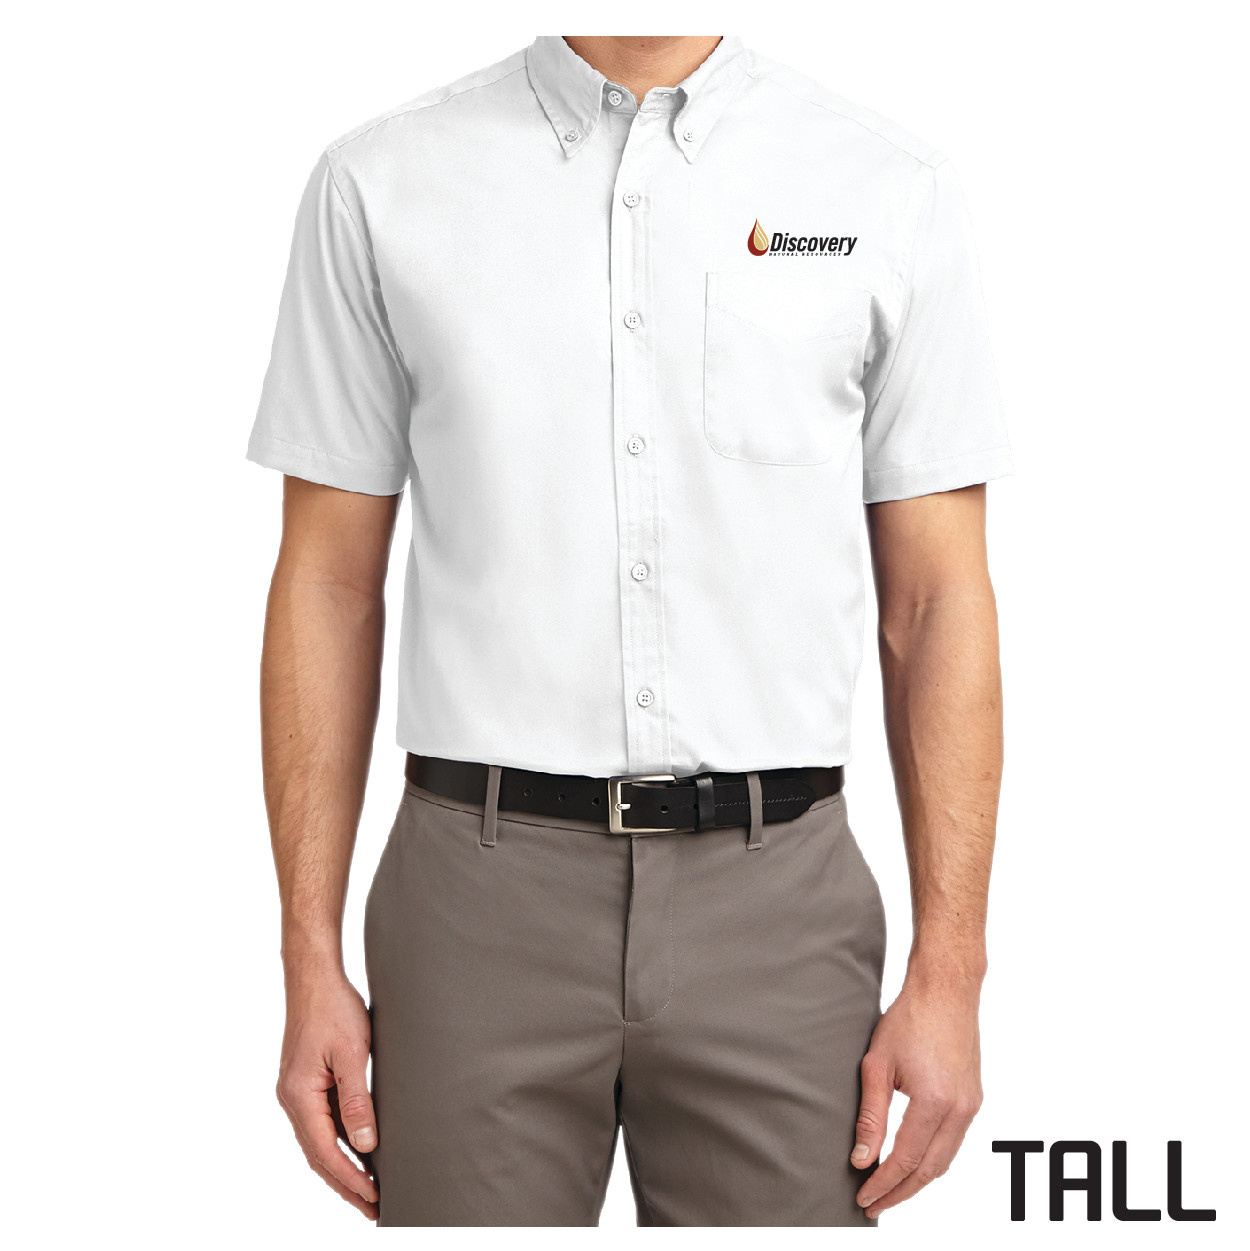 Port Authority Port Authority TALL Short Sleeve Easy Care Shirt (White)